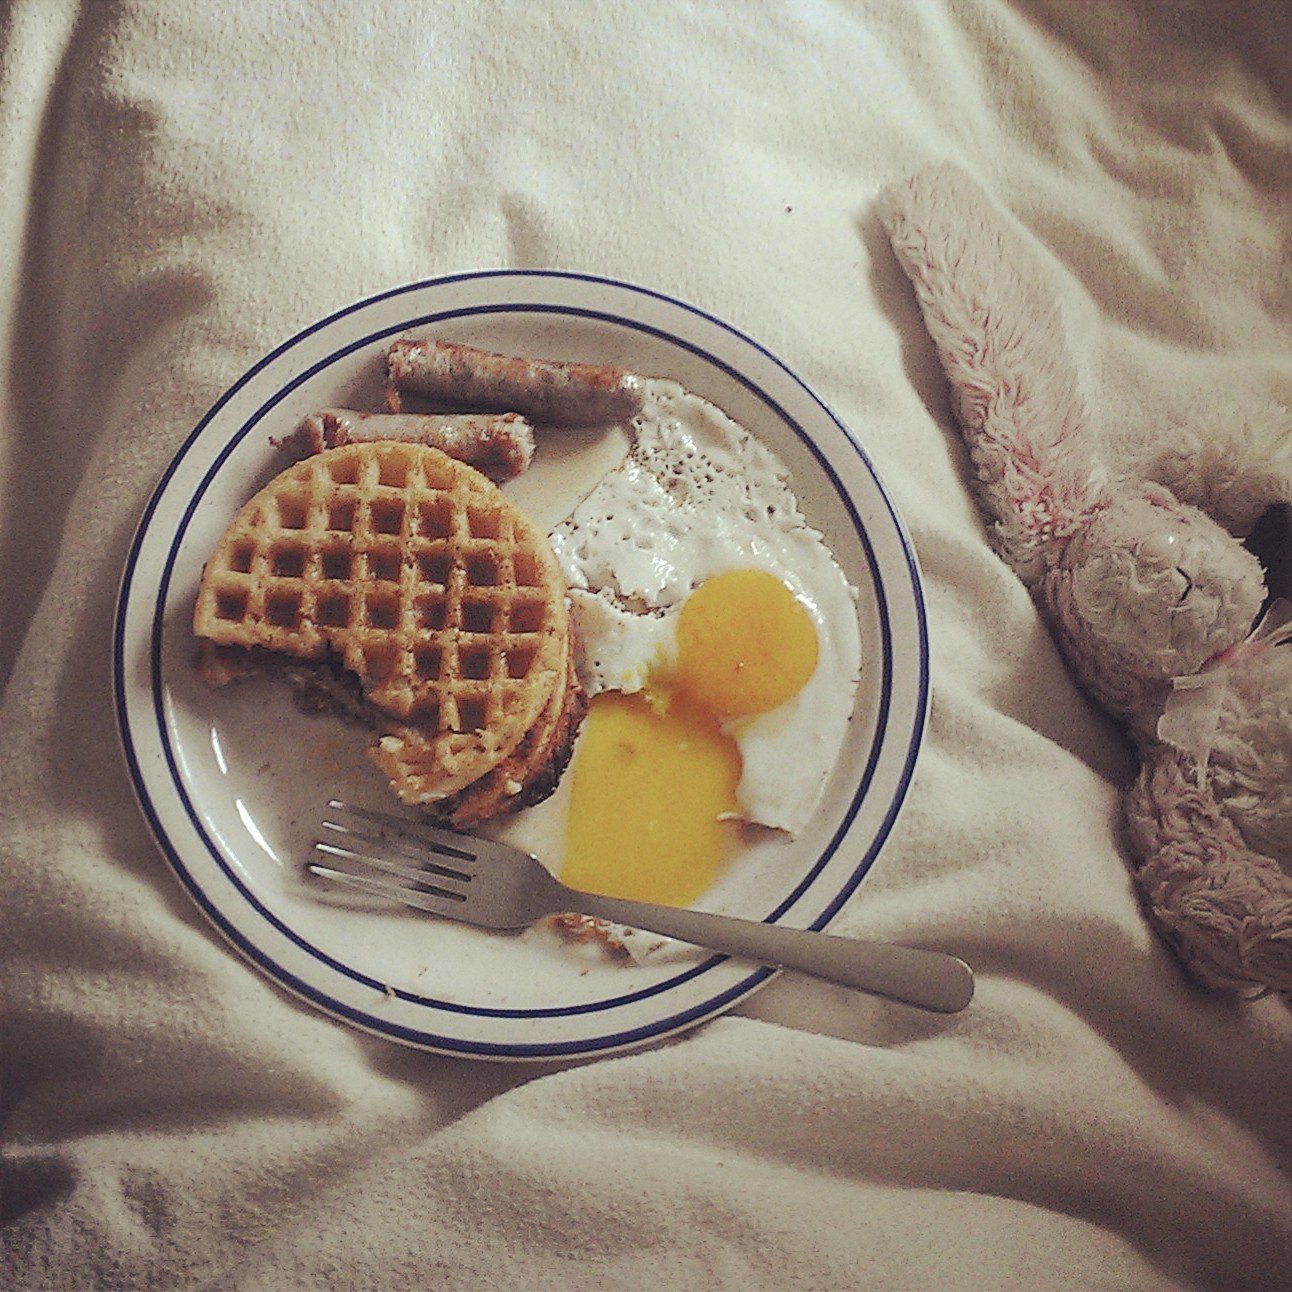 gluten free waffles, fried eggs and sausages